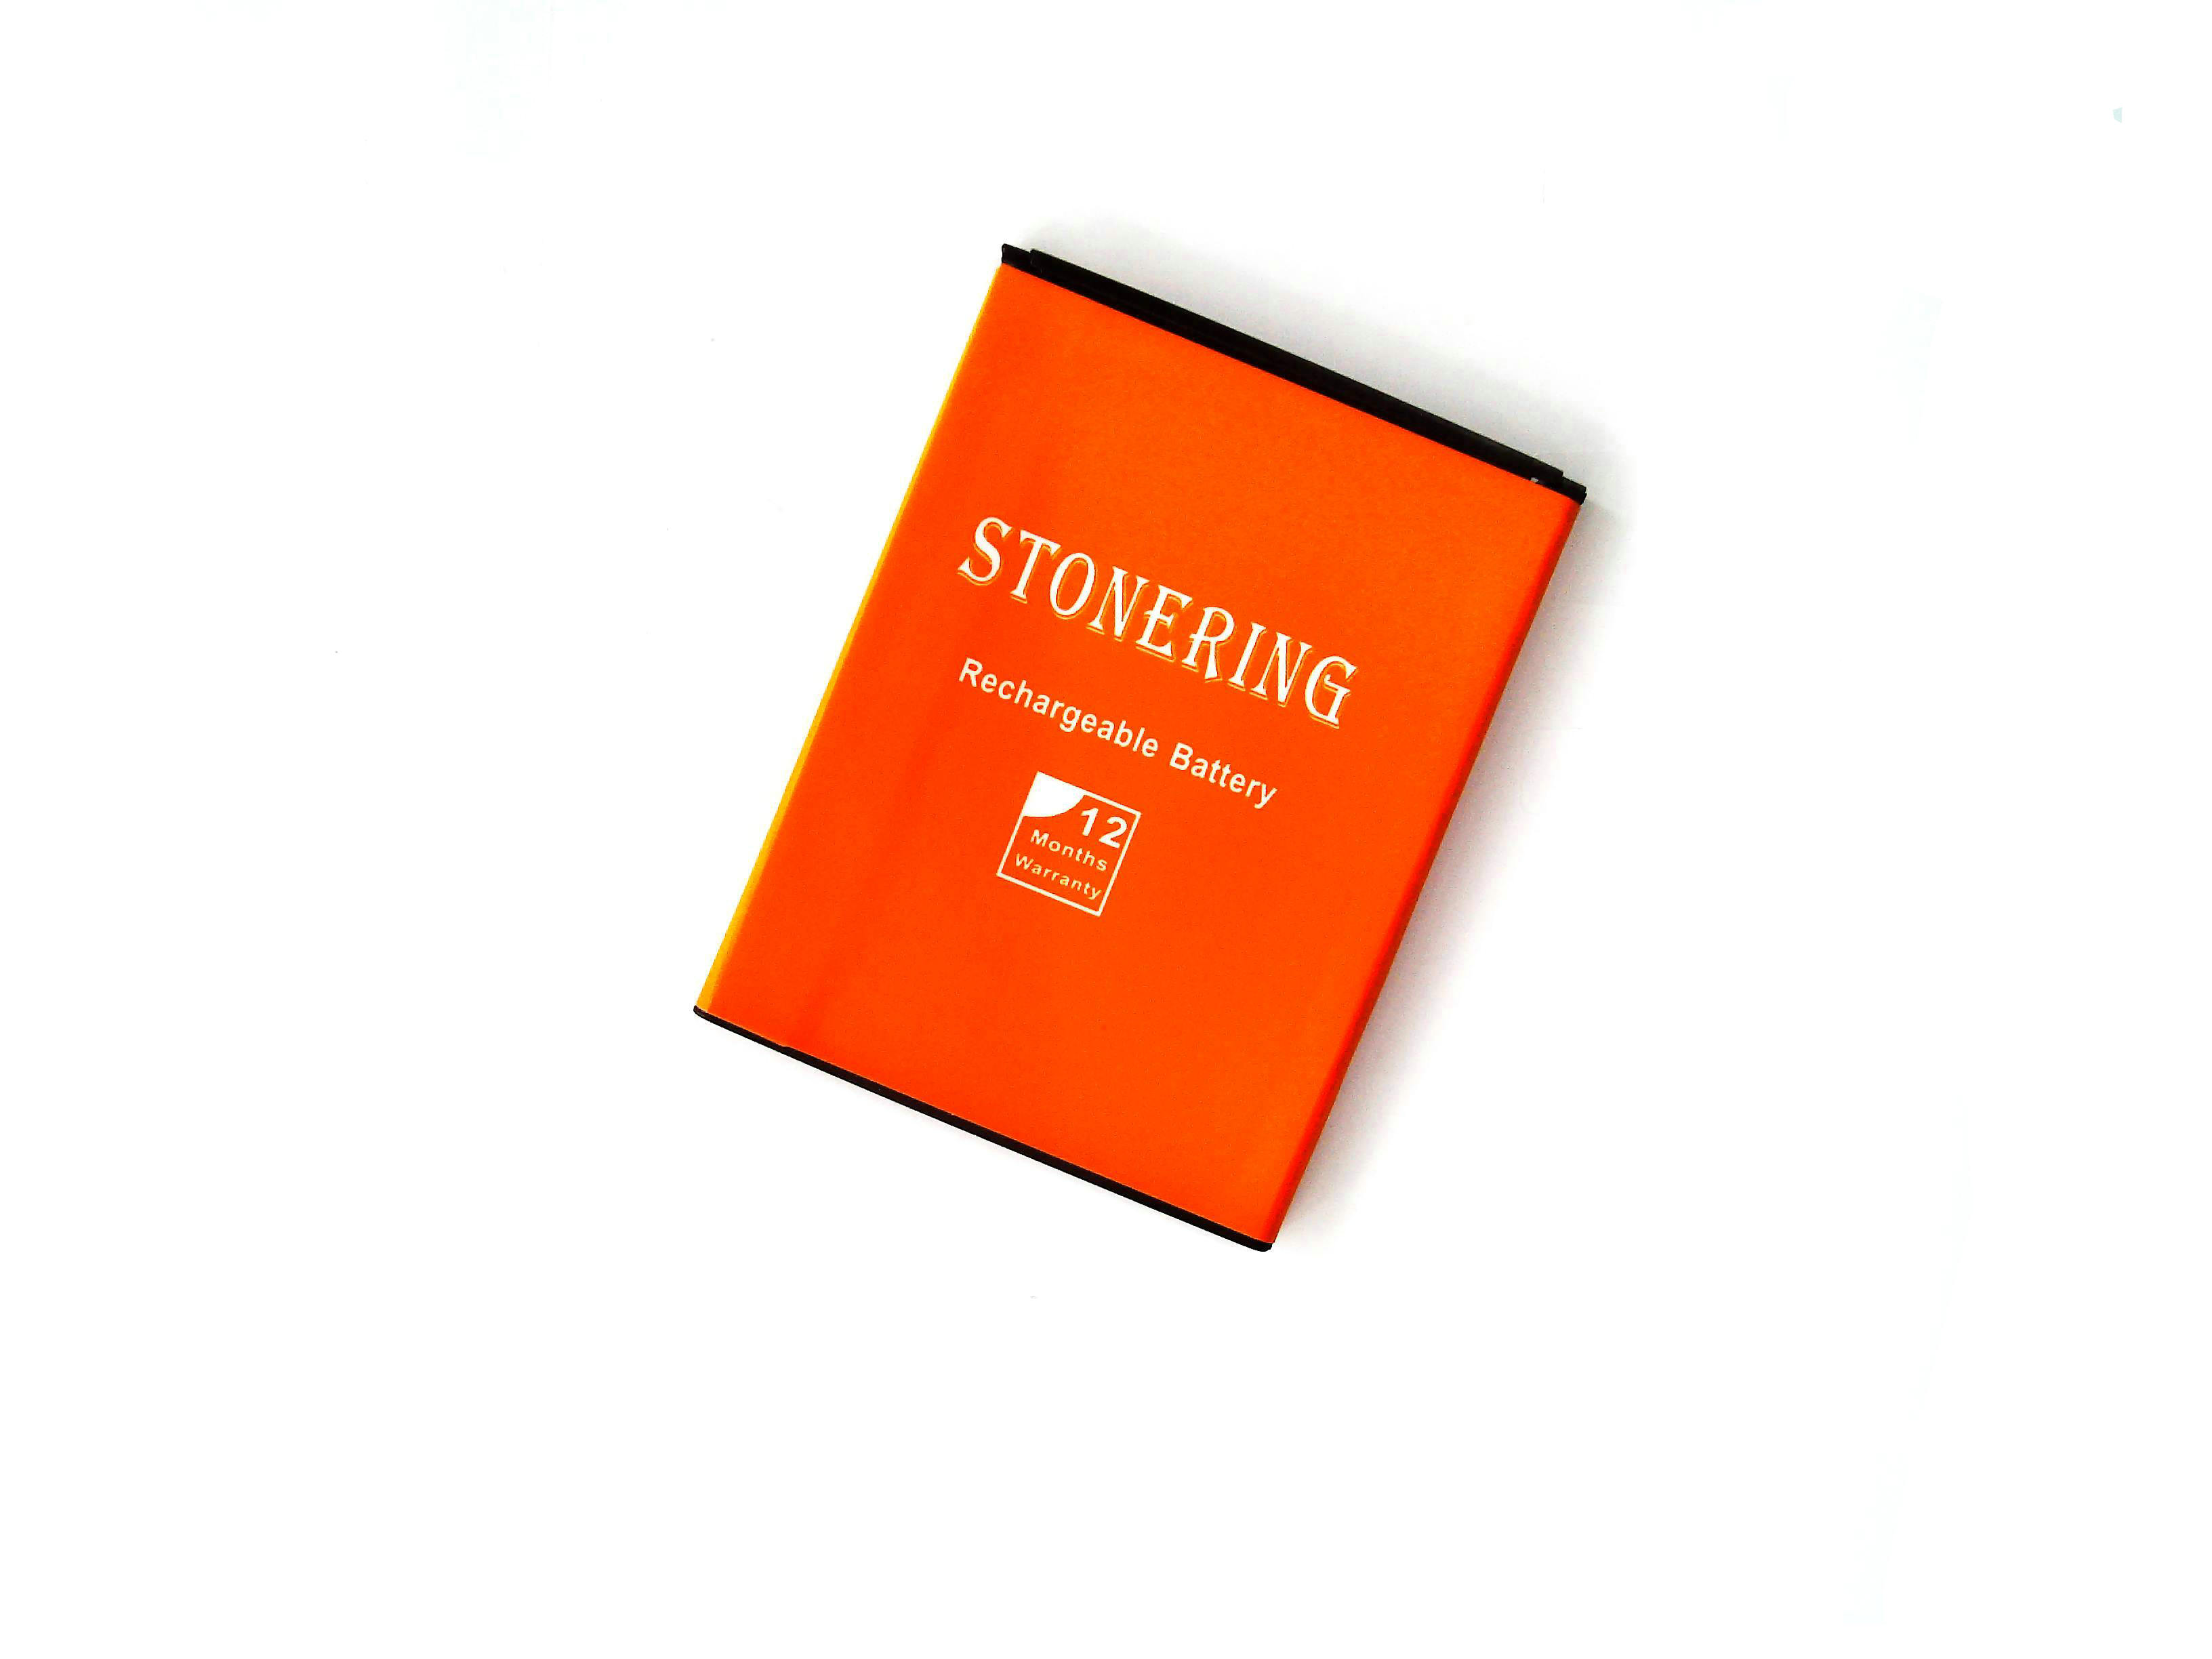 Stonering Battery 2500mAh Micromax High Quality For Micromax BOLT Supreme 6 Q409 Cell Phone